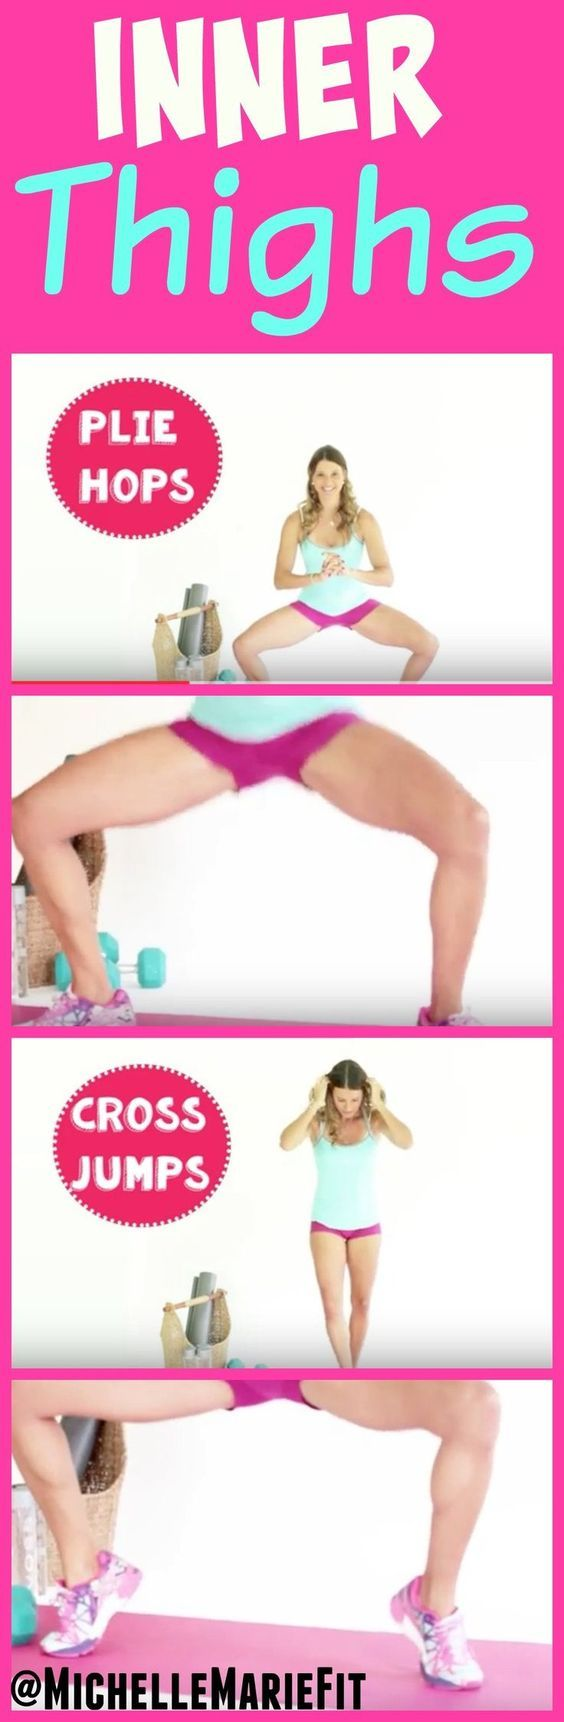 This is a great inner thighs workout that you can do at home. You don't need any equipment. If you do exercises with resistance, like these, you will get you the best results.